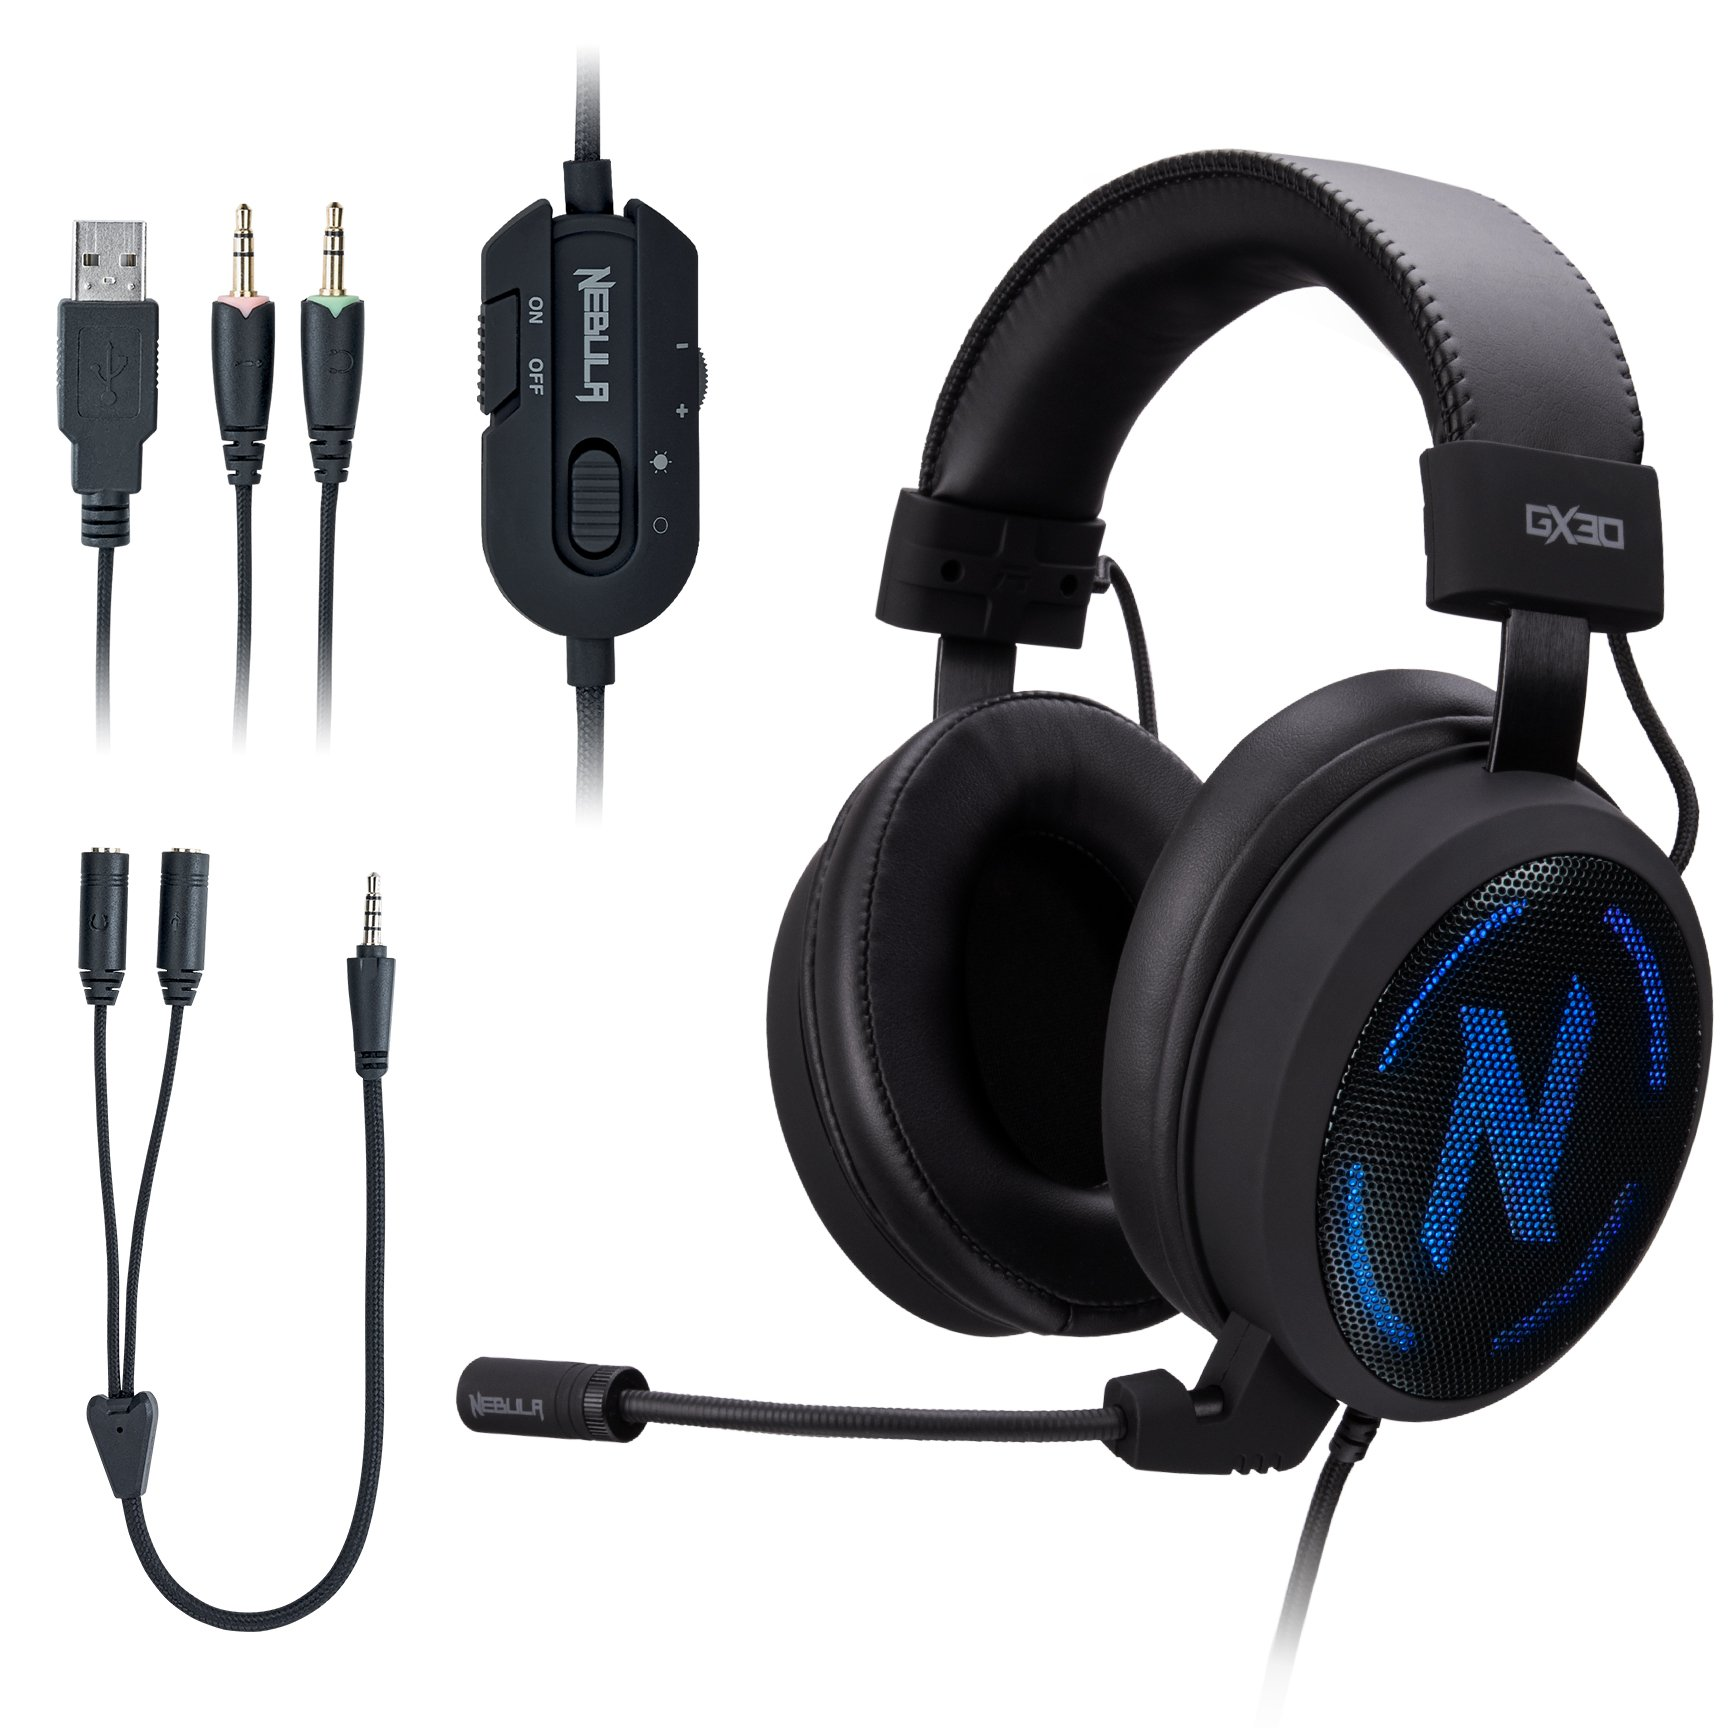 ROSEWILL Gaming Headset with Mic and 7 Color Backlit for PC/ Computer/ PS4/ MAC/ Xbox One/ Laptop/ iPad, Gaming Headphones with RGB LED, Detachable Microphone, Comfortable Headband, In-line Controller by Rosewill